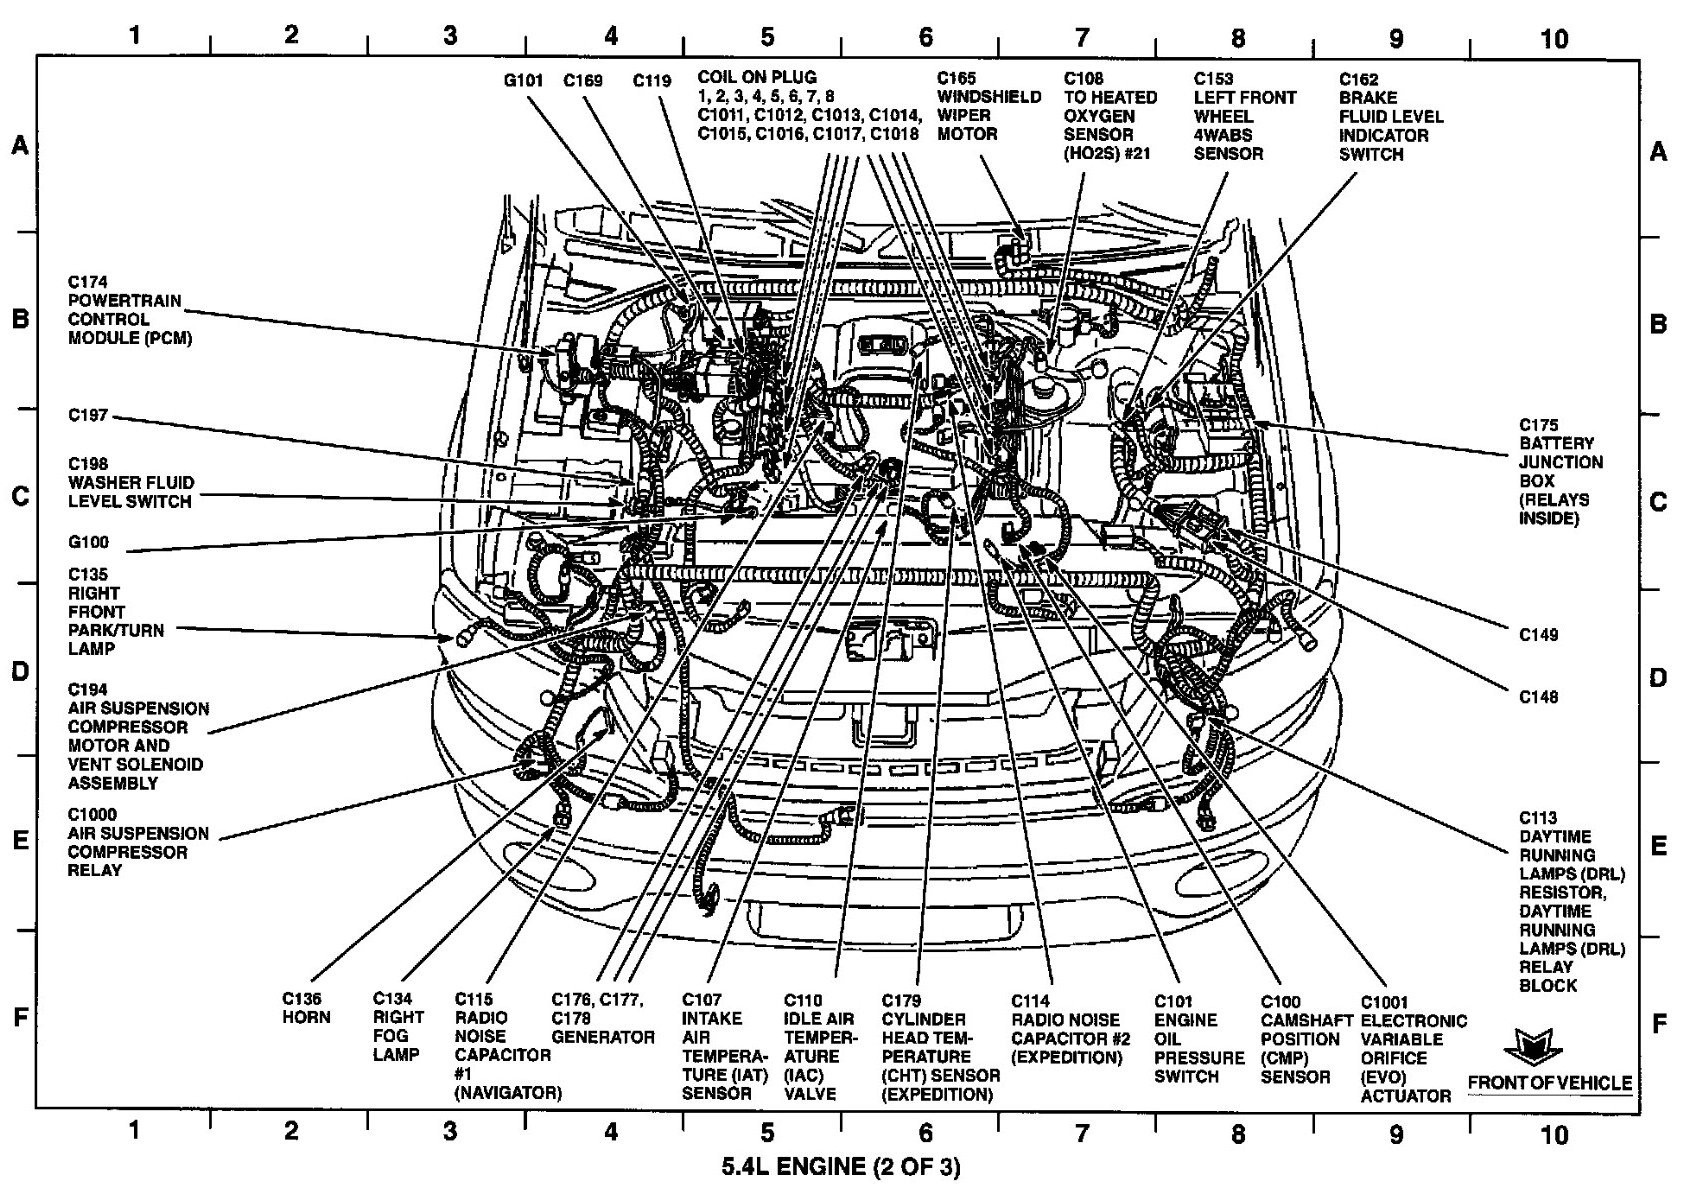 bmw 328i engine diagram u2022 free wiring diagrams rh pcpersia org 2009 bmw 328i engine diagram 2008 bmw 328i engine diagram